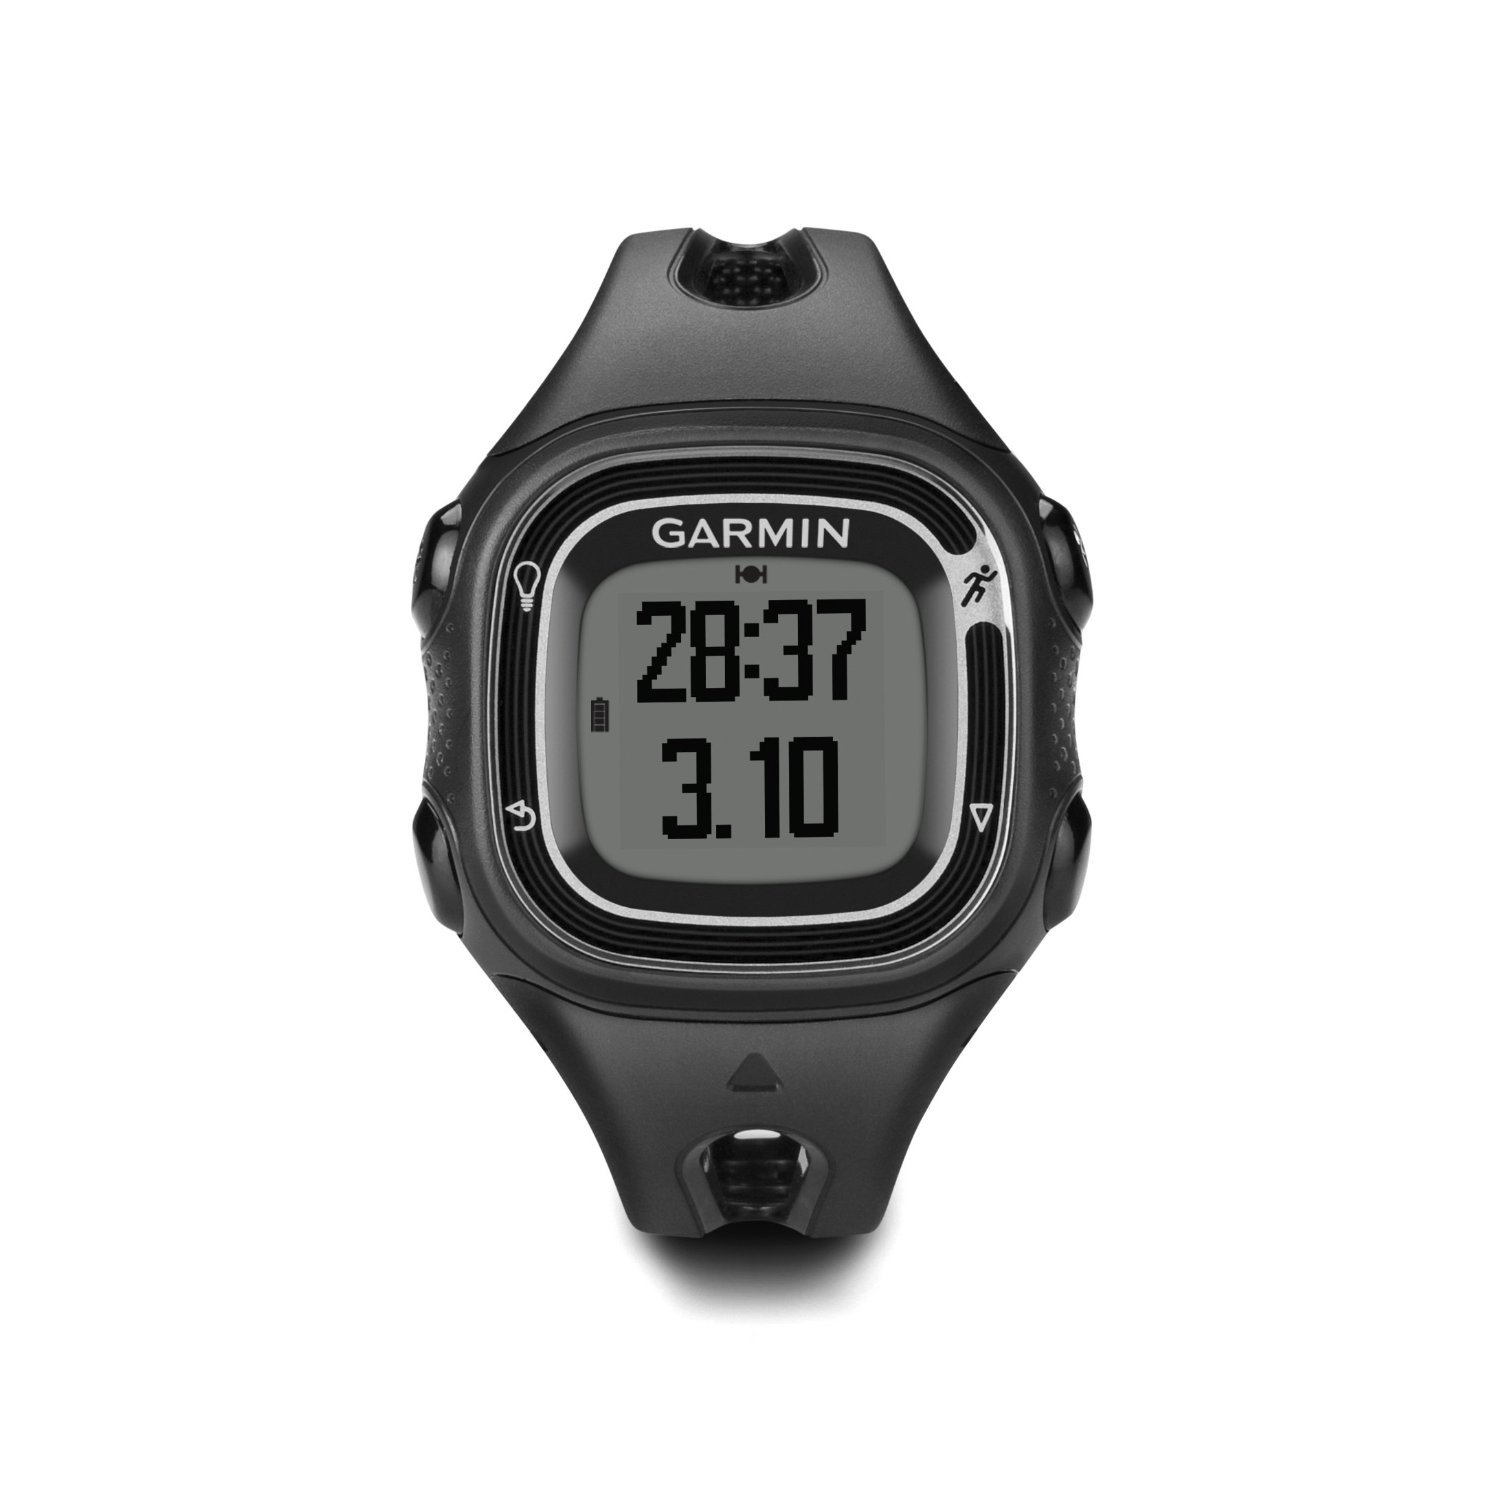 Garmin Forerunner Silver Certified Refurbished Image 1